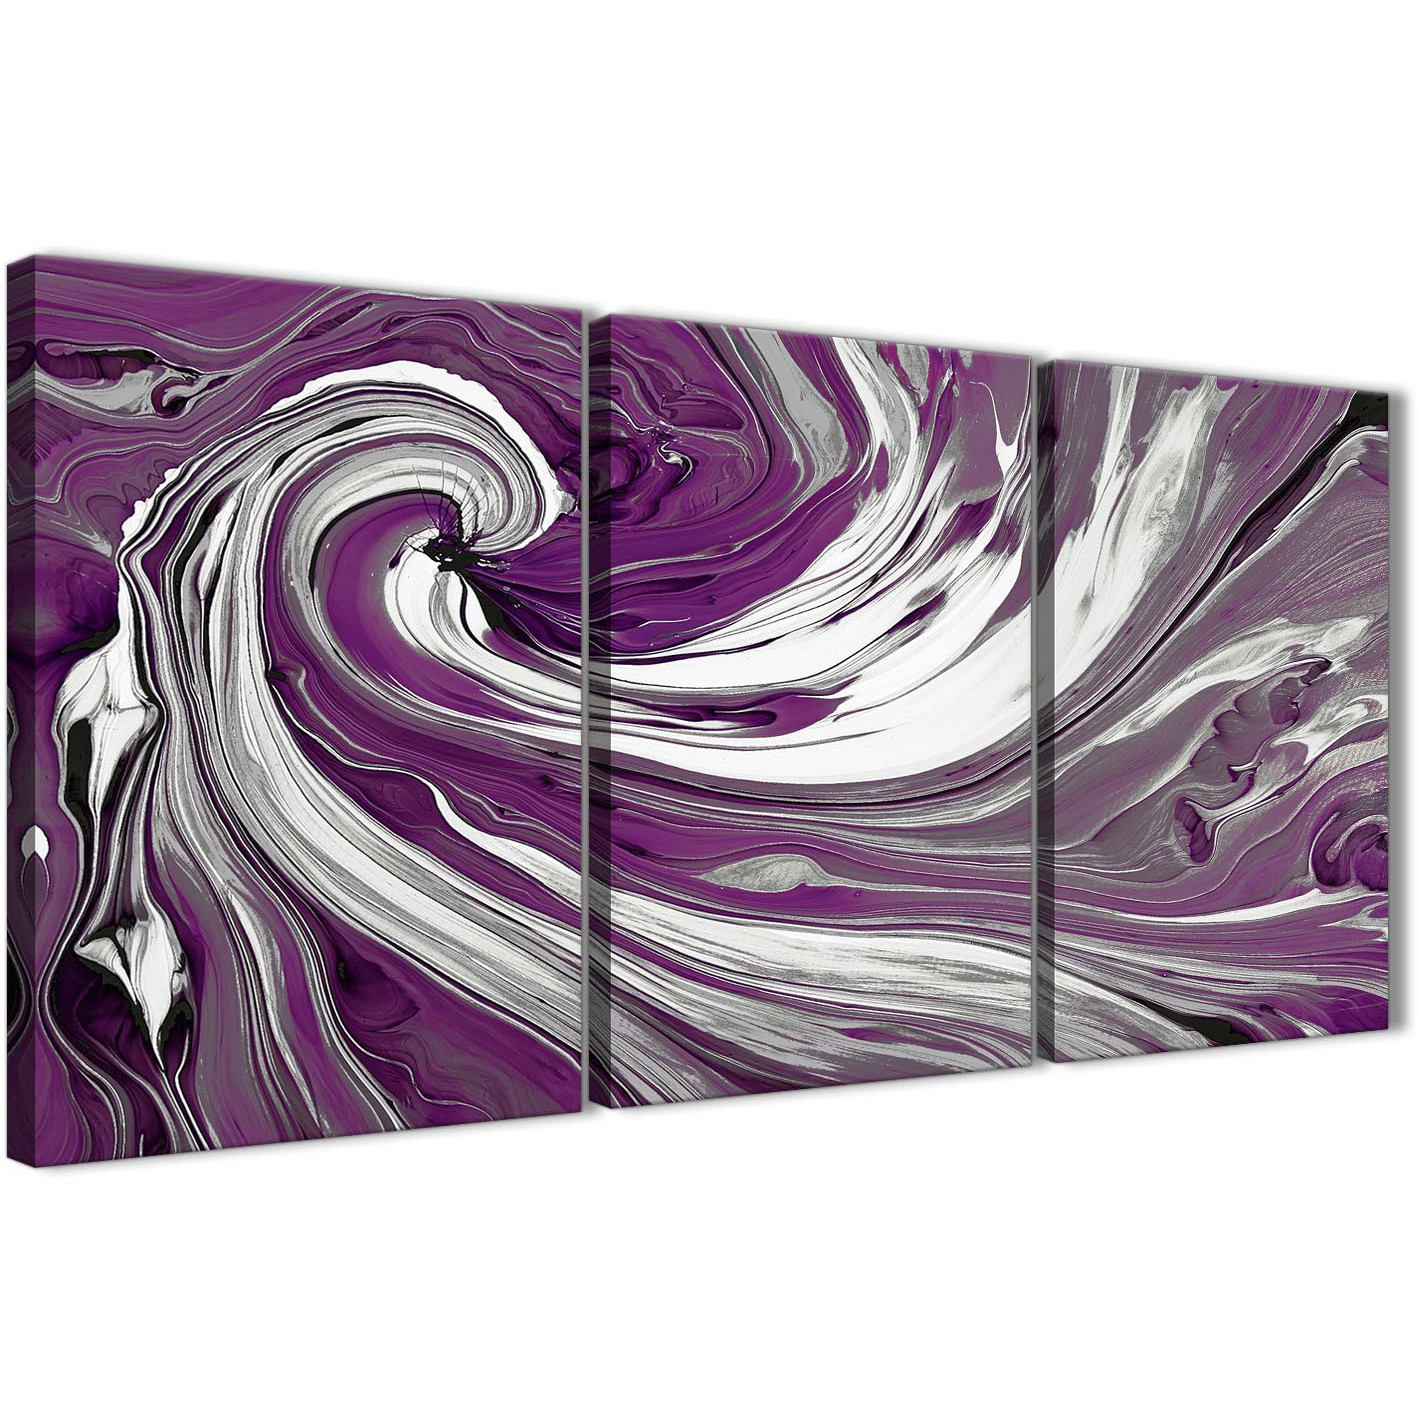 Oversized Plum Purple White Swirls Modern Abstract Canvas Wall Art Split 3  Set 125cm Wide 3353 Display Gallery Item 1 ...